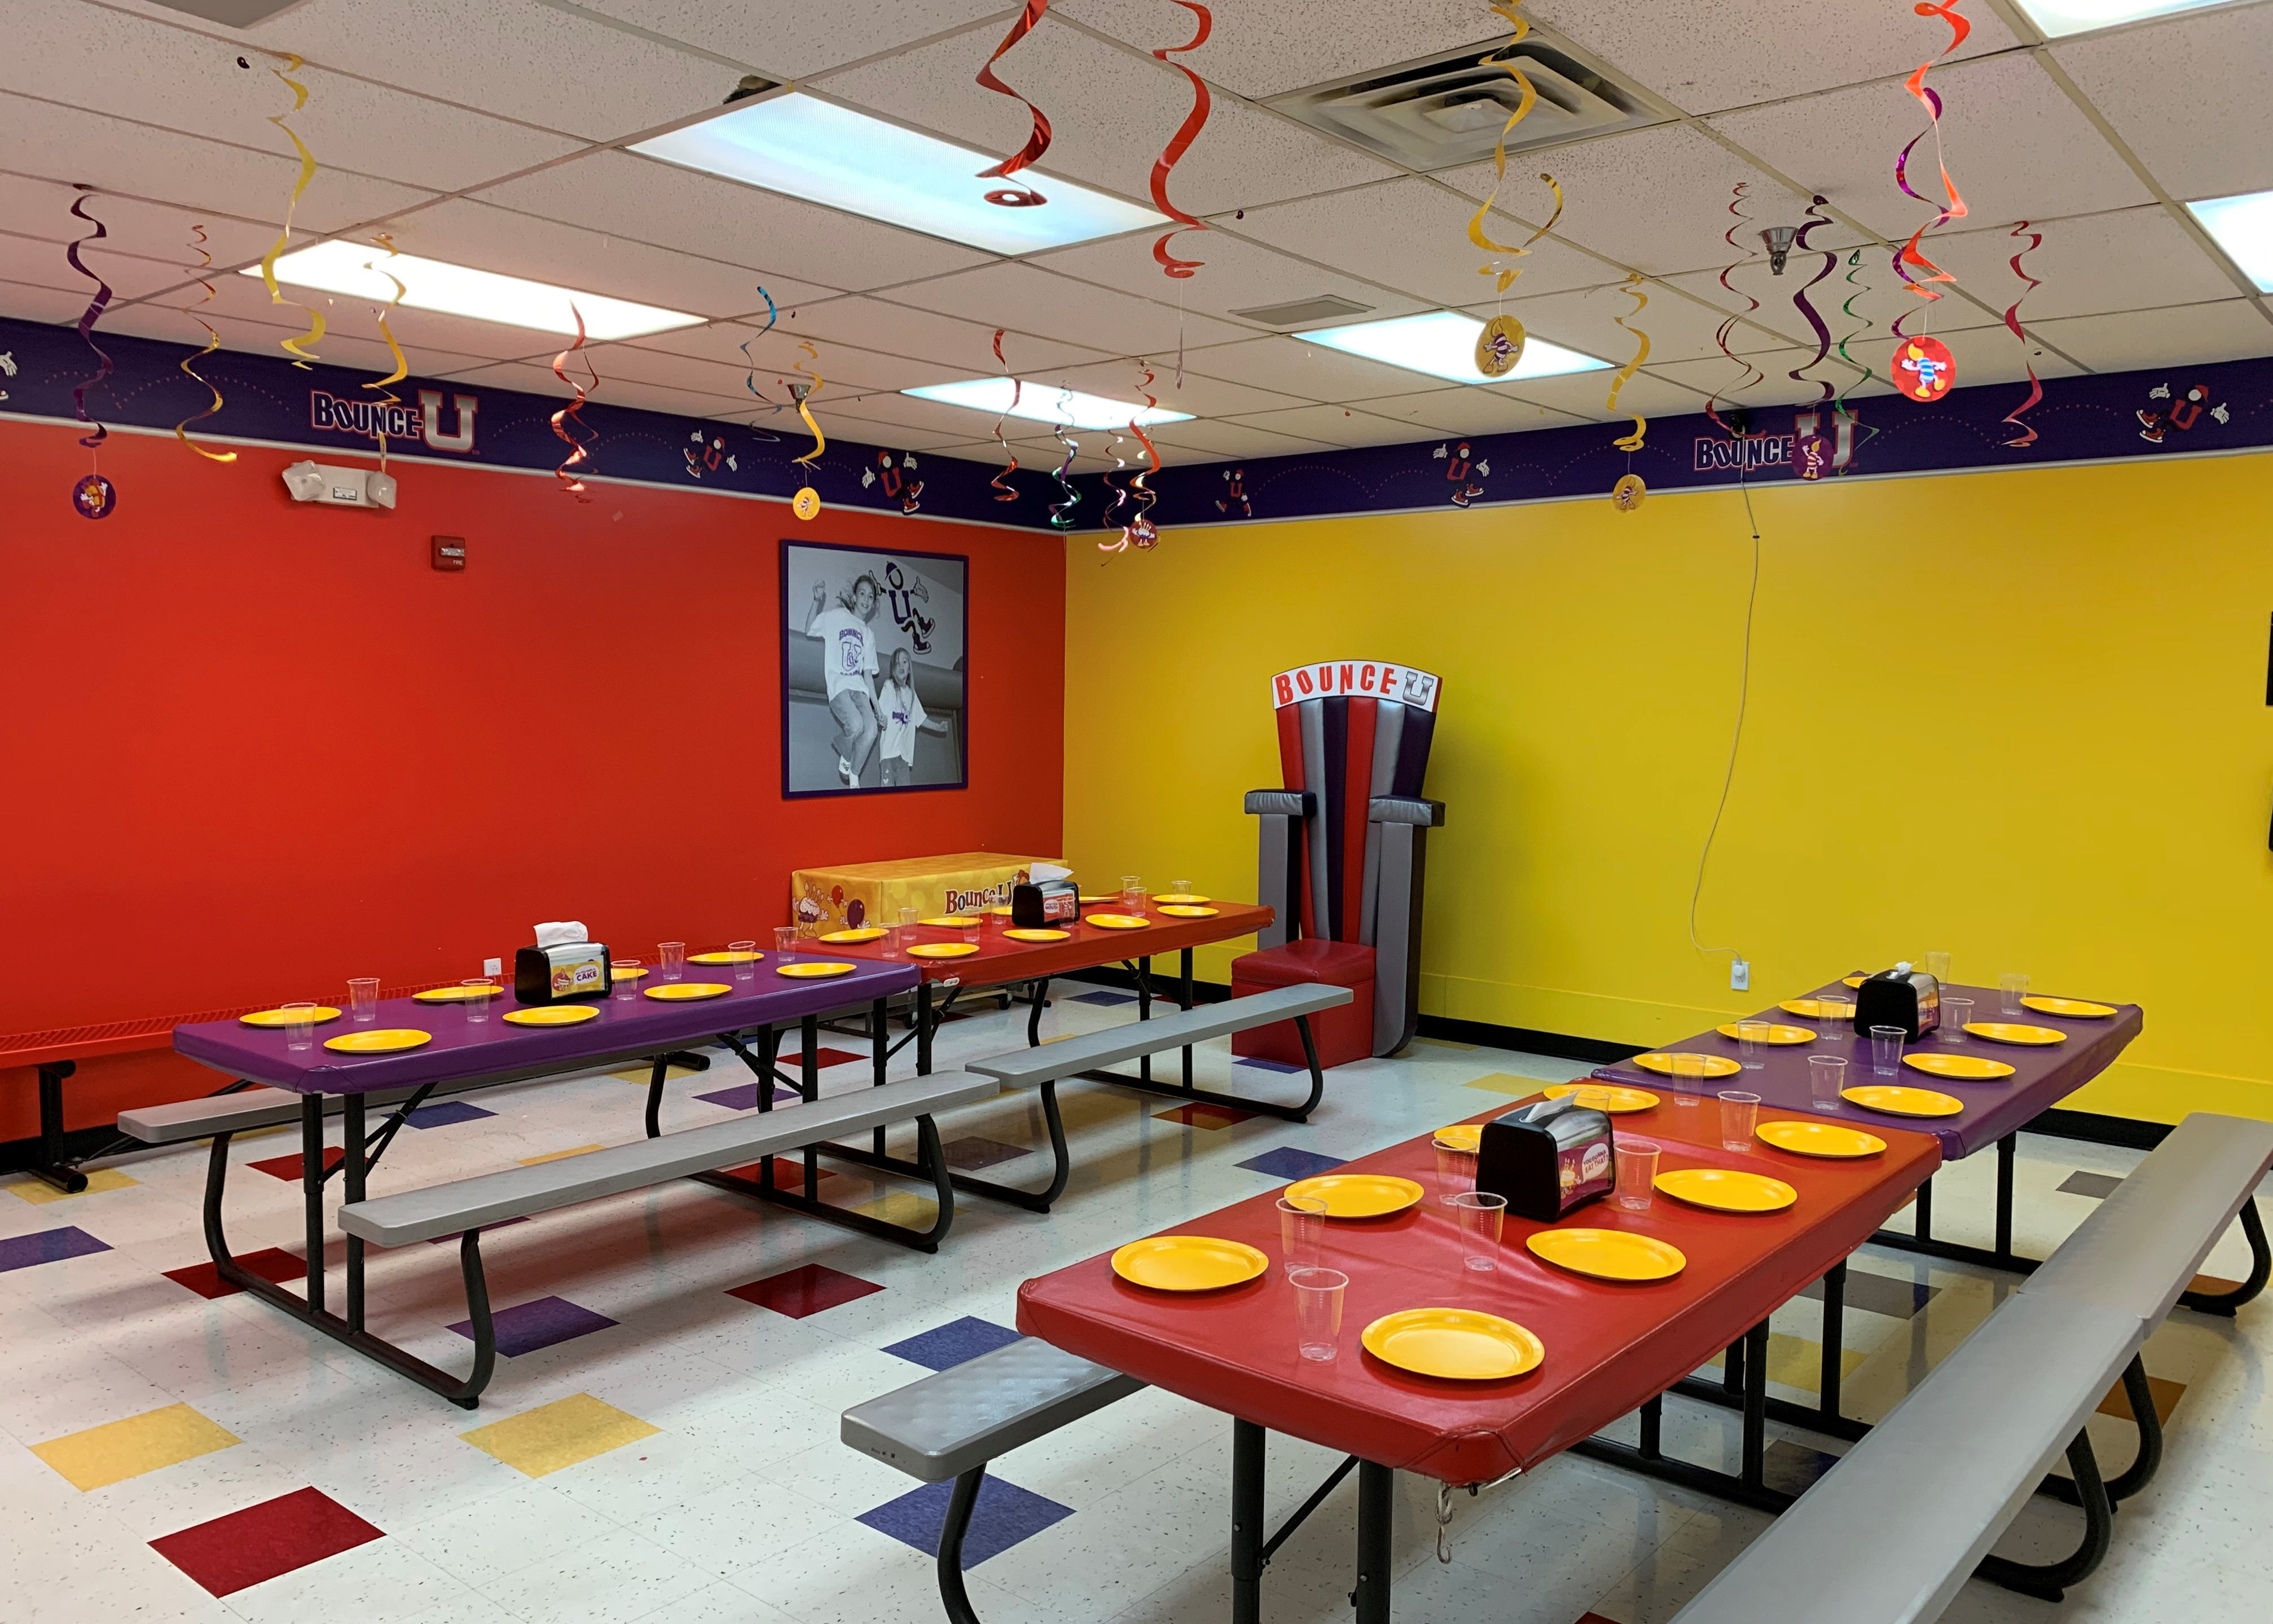 BounceU birthday private party room with tables set up with plates and cups for kids.